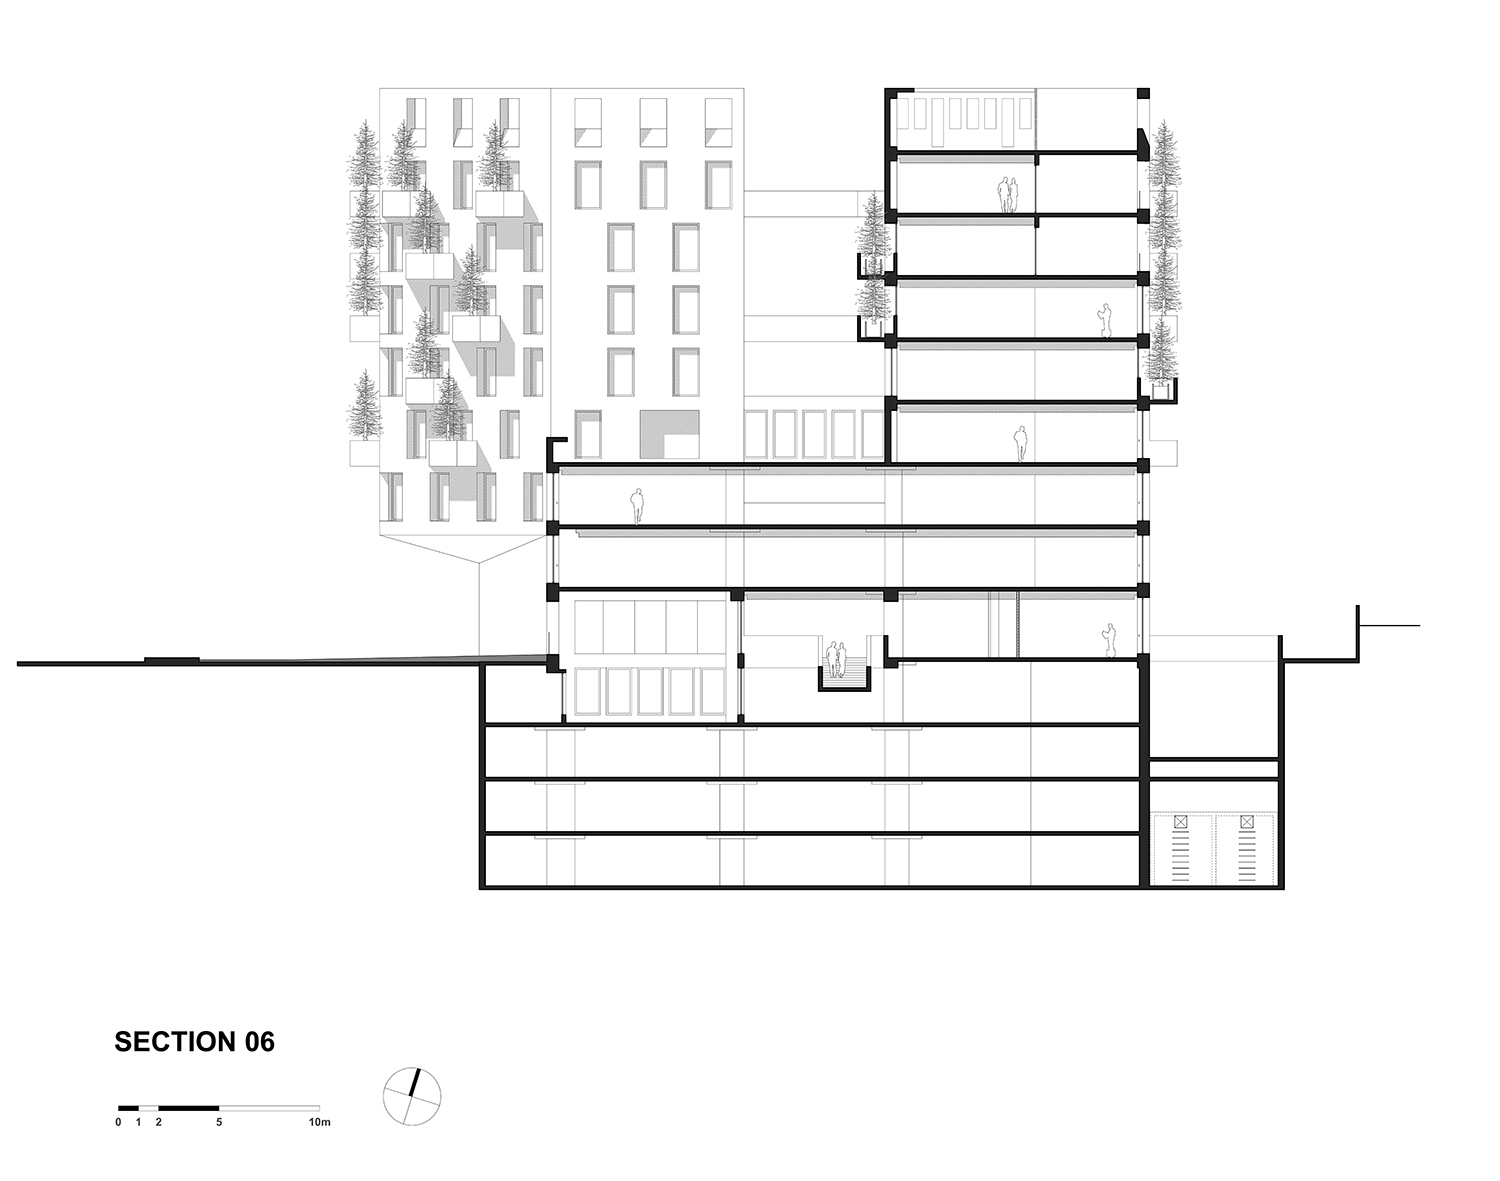 SECTION 06 GONZALO MARDONES ARQUITECTOS}